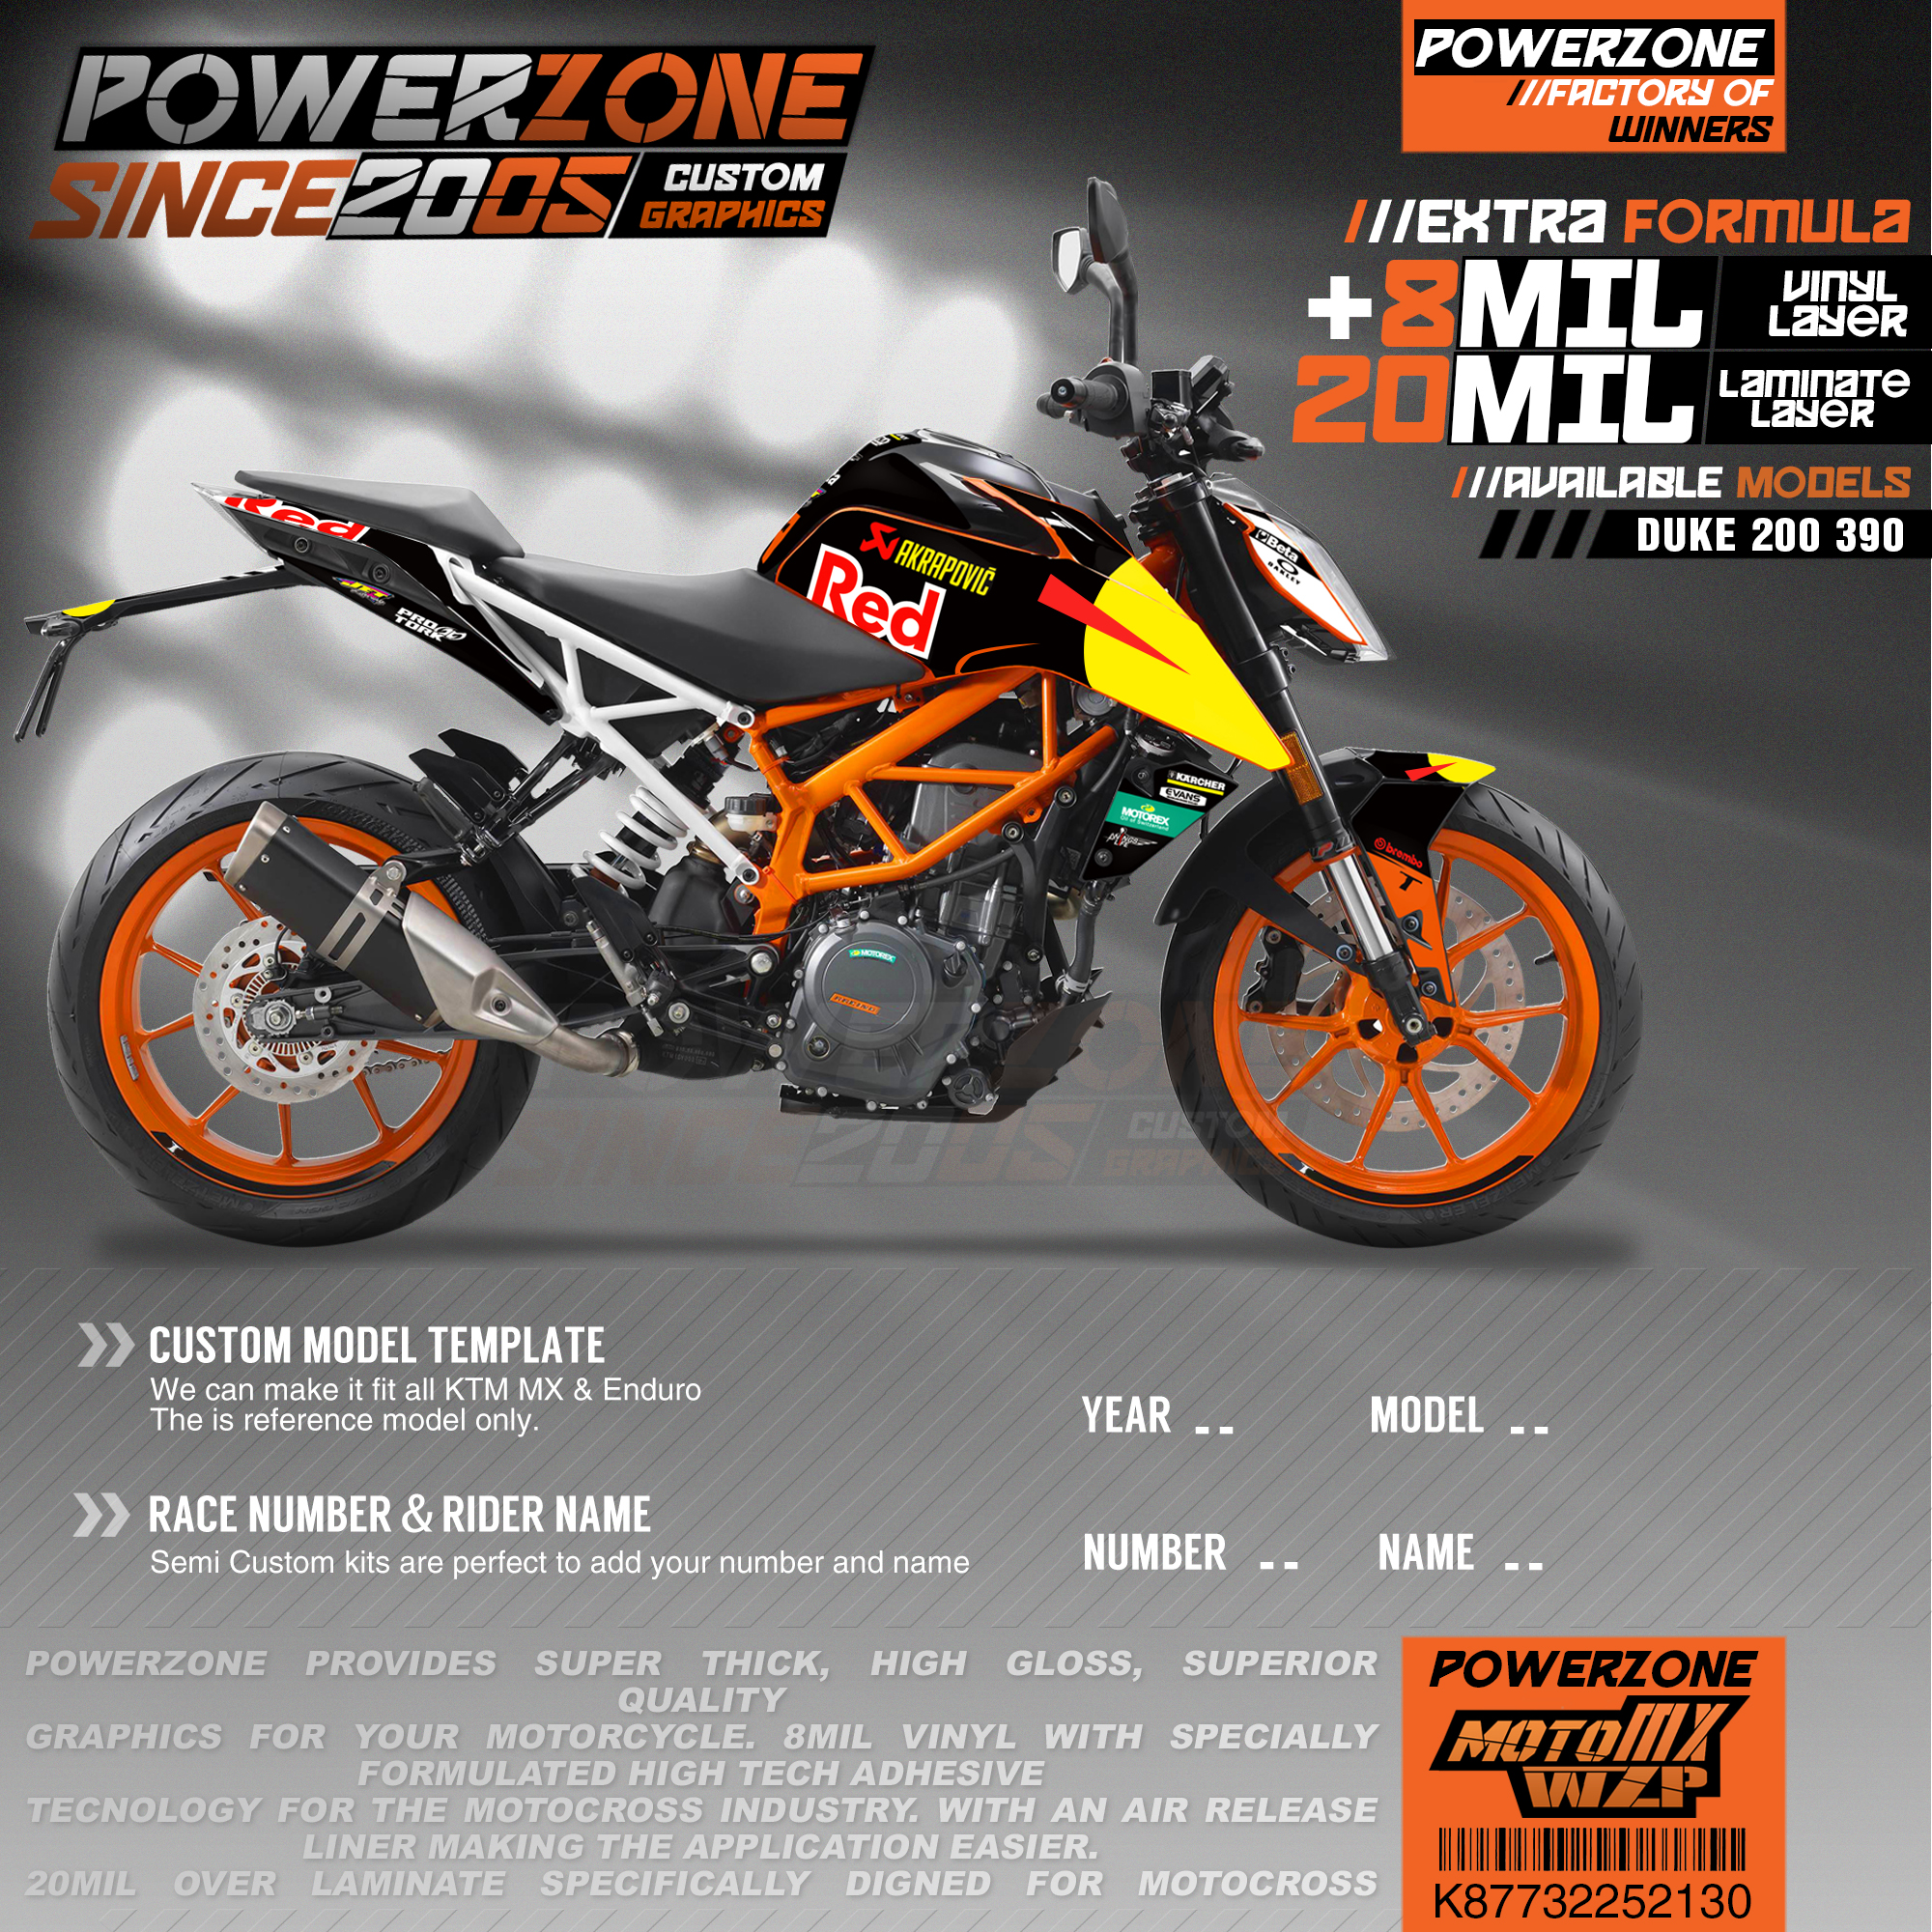 PowerZone Custom Team Graphics Backgrounds Decals 3M <font><b>Stickers</b></font> Kit For KTM <font><b>DUKE</b></font> 200 390 2011-2016 2017-2019 130 image